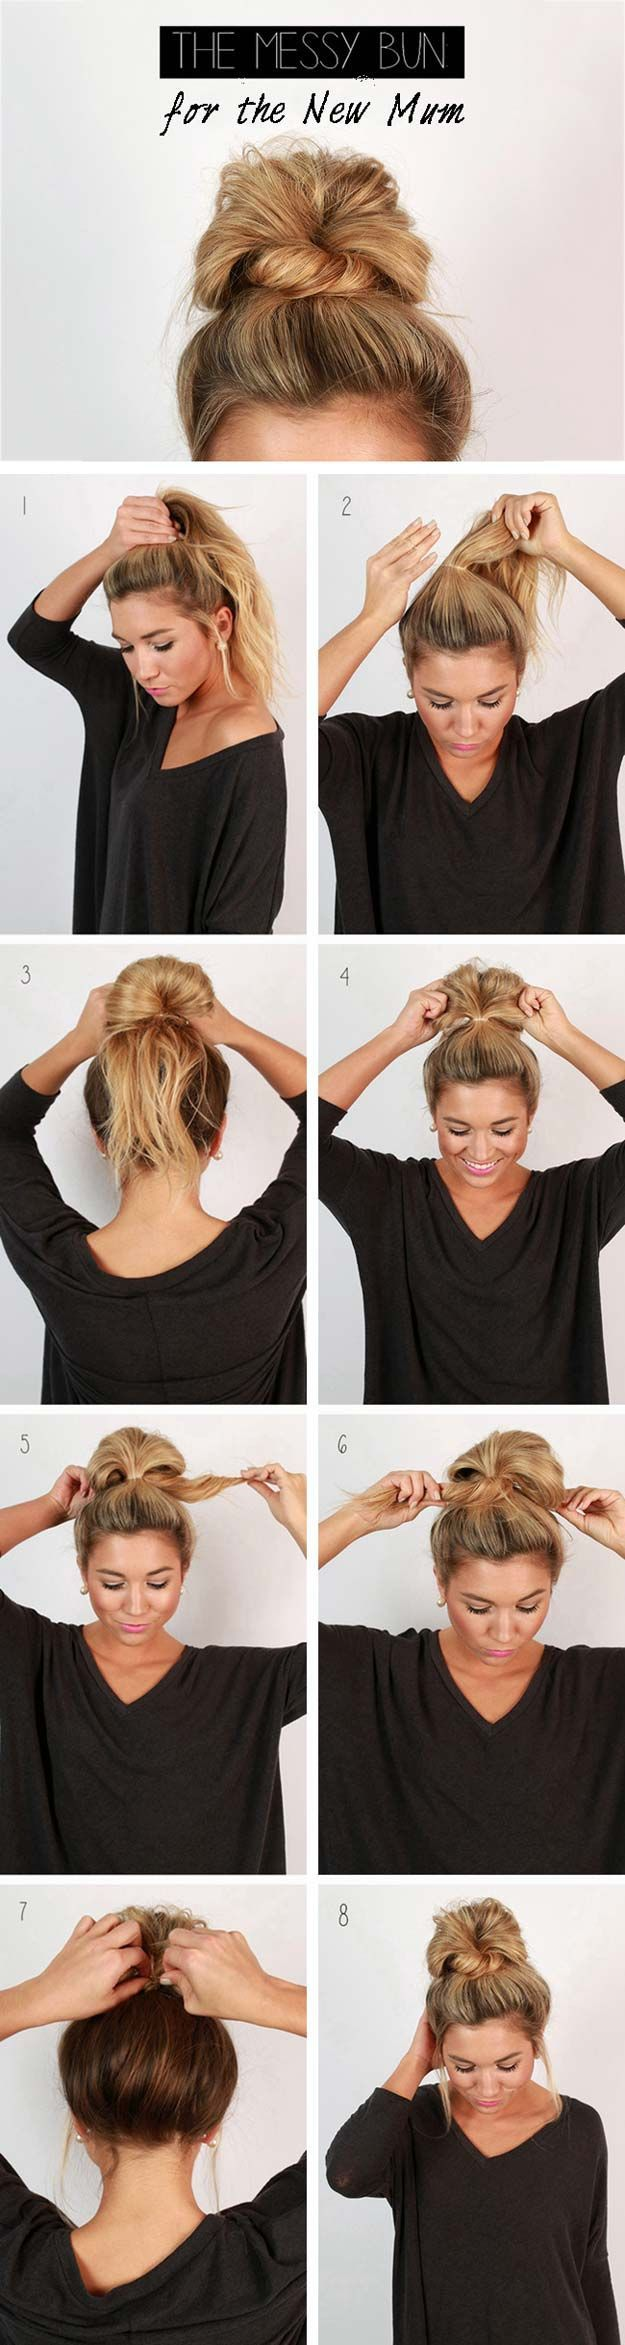 best my style pinboard images on pinterest hair ideas